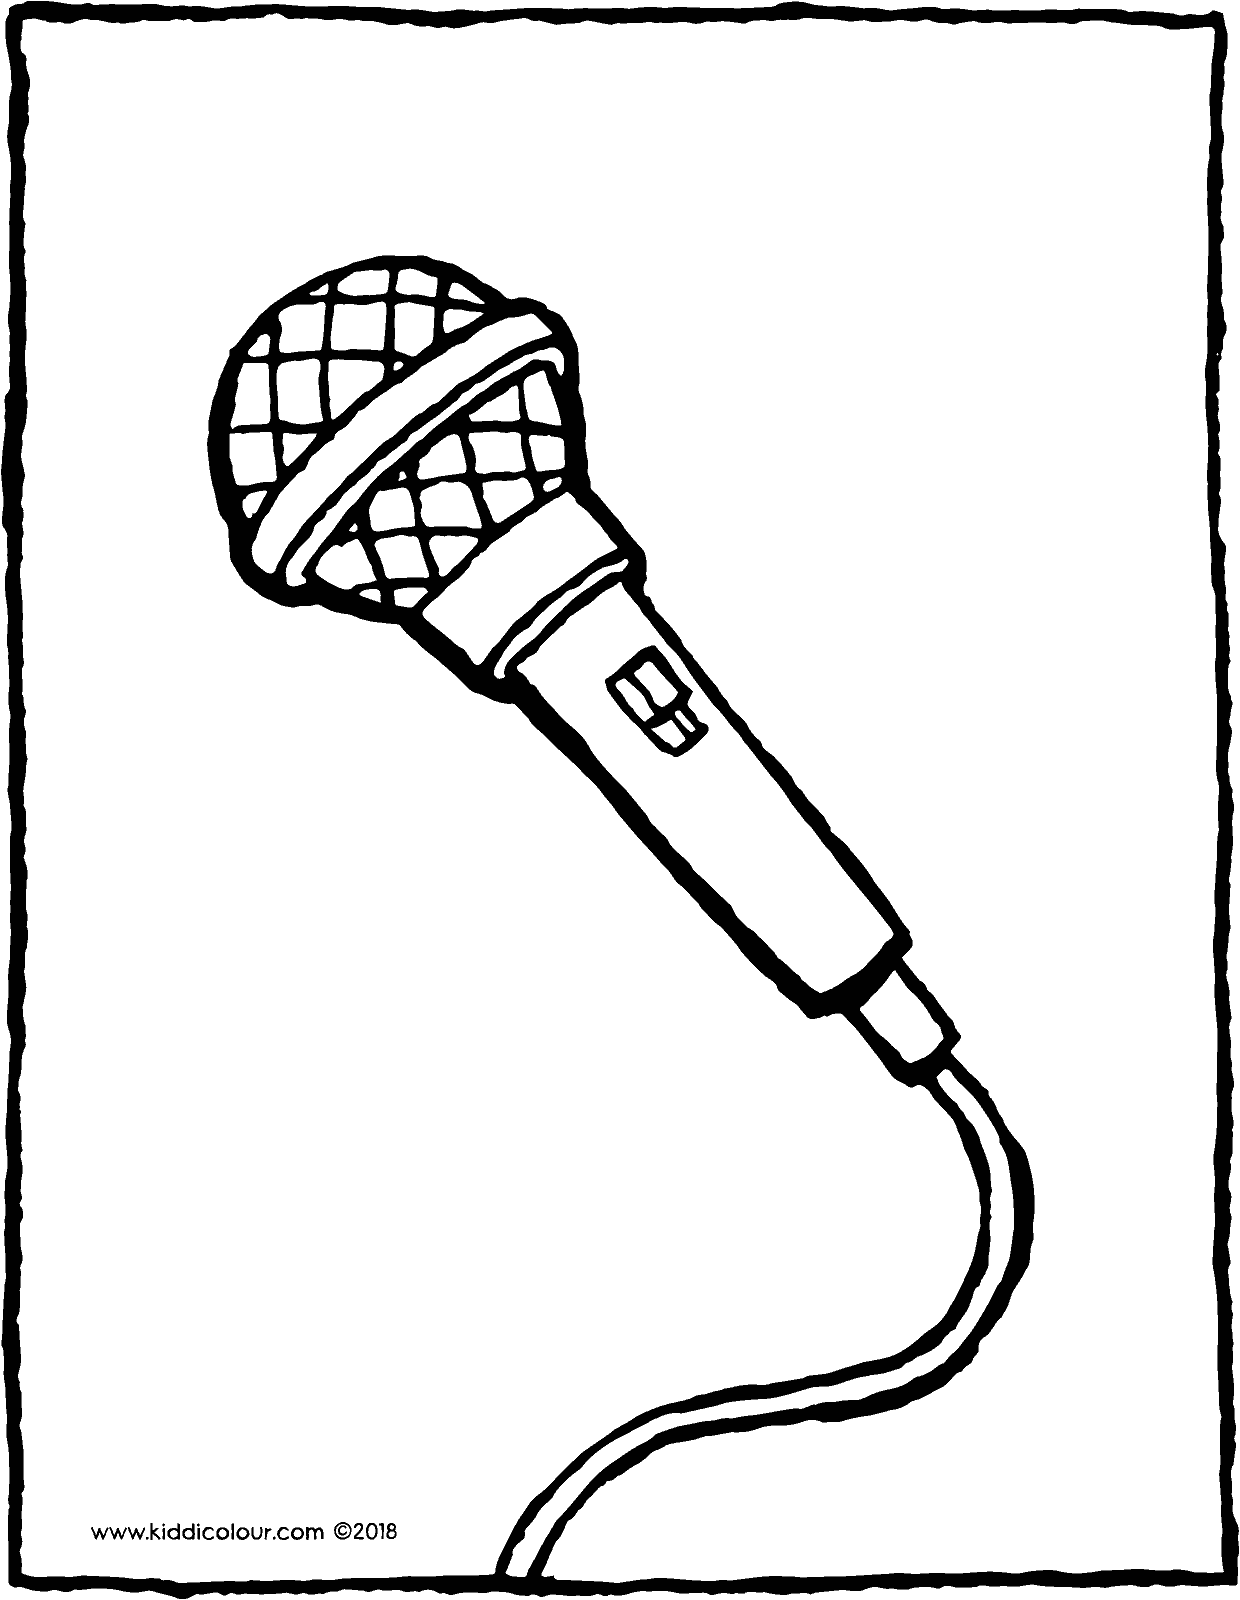 microphone coloring pages microphone coloring pages coloring pages to download and microphone pages coloring